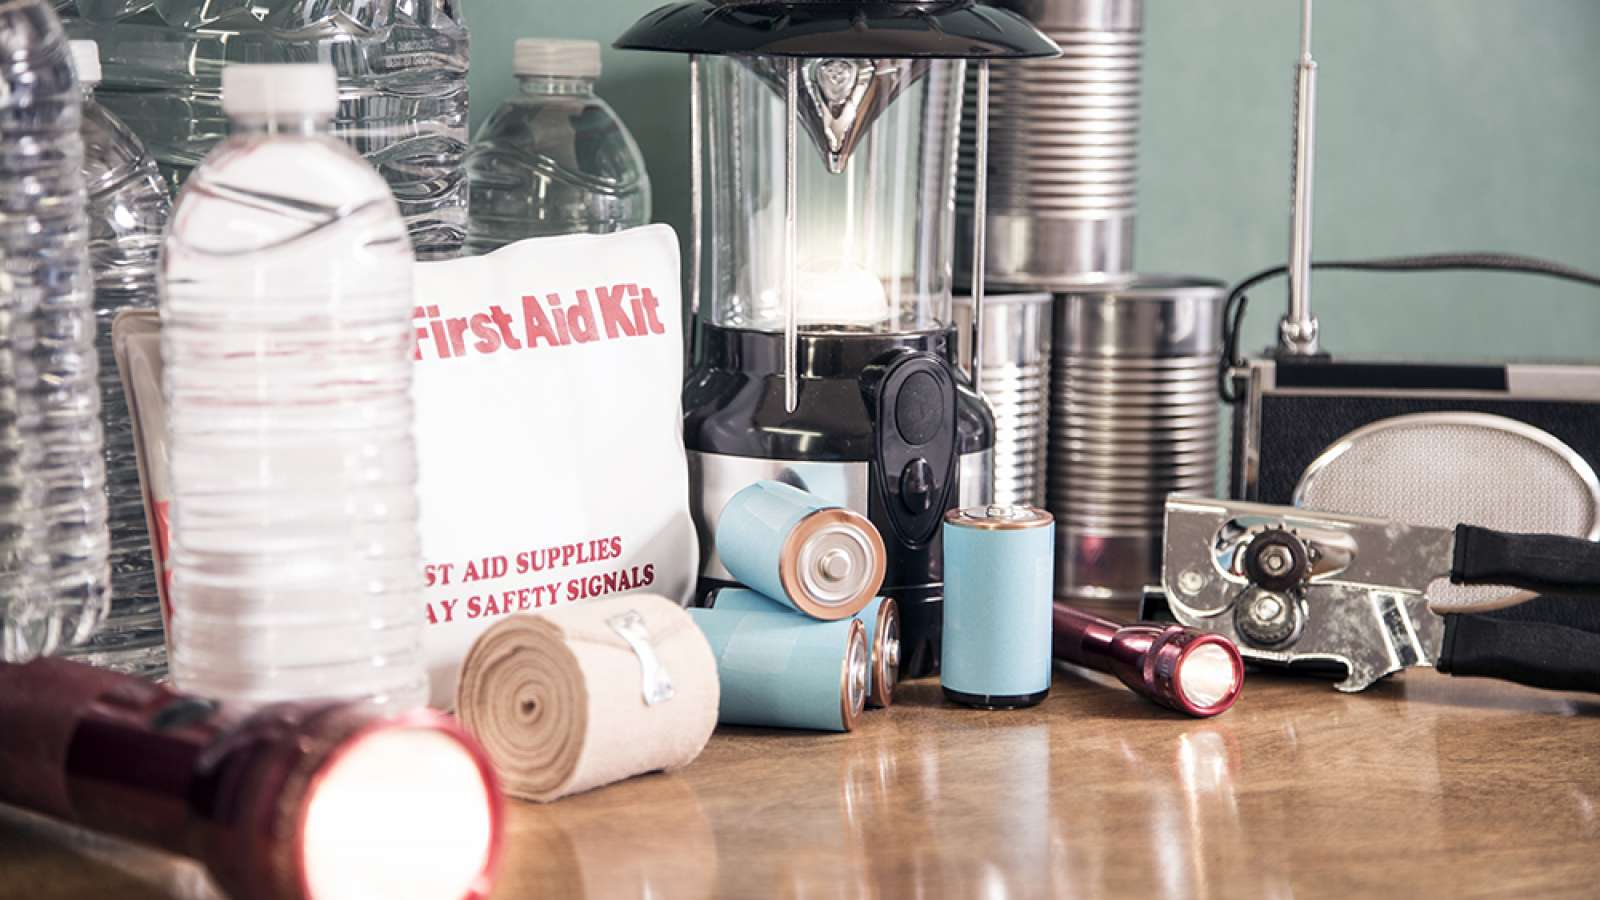 emergency supplies on a table